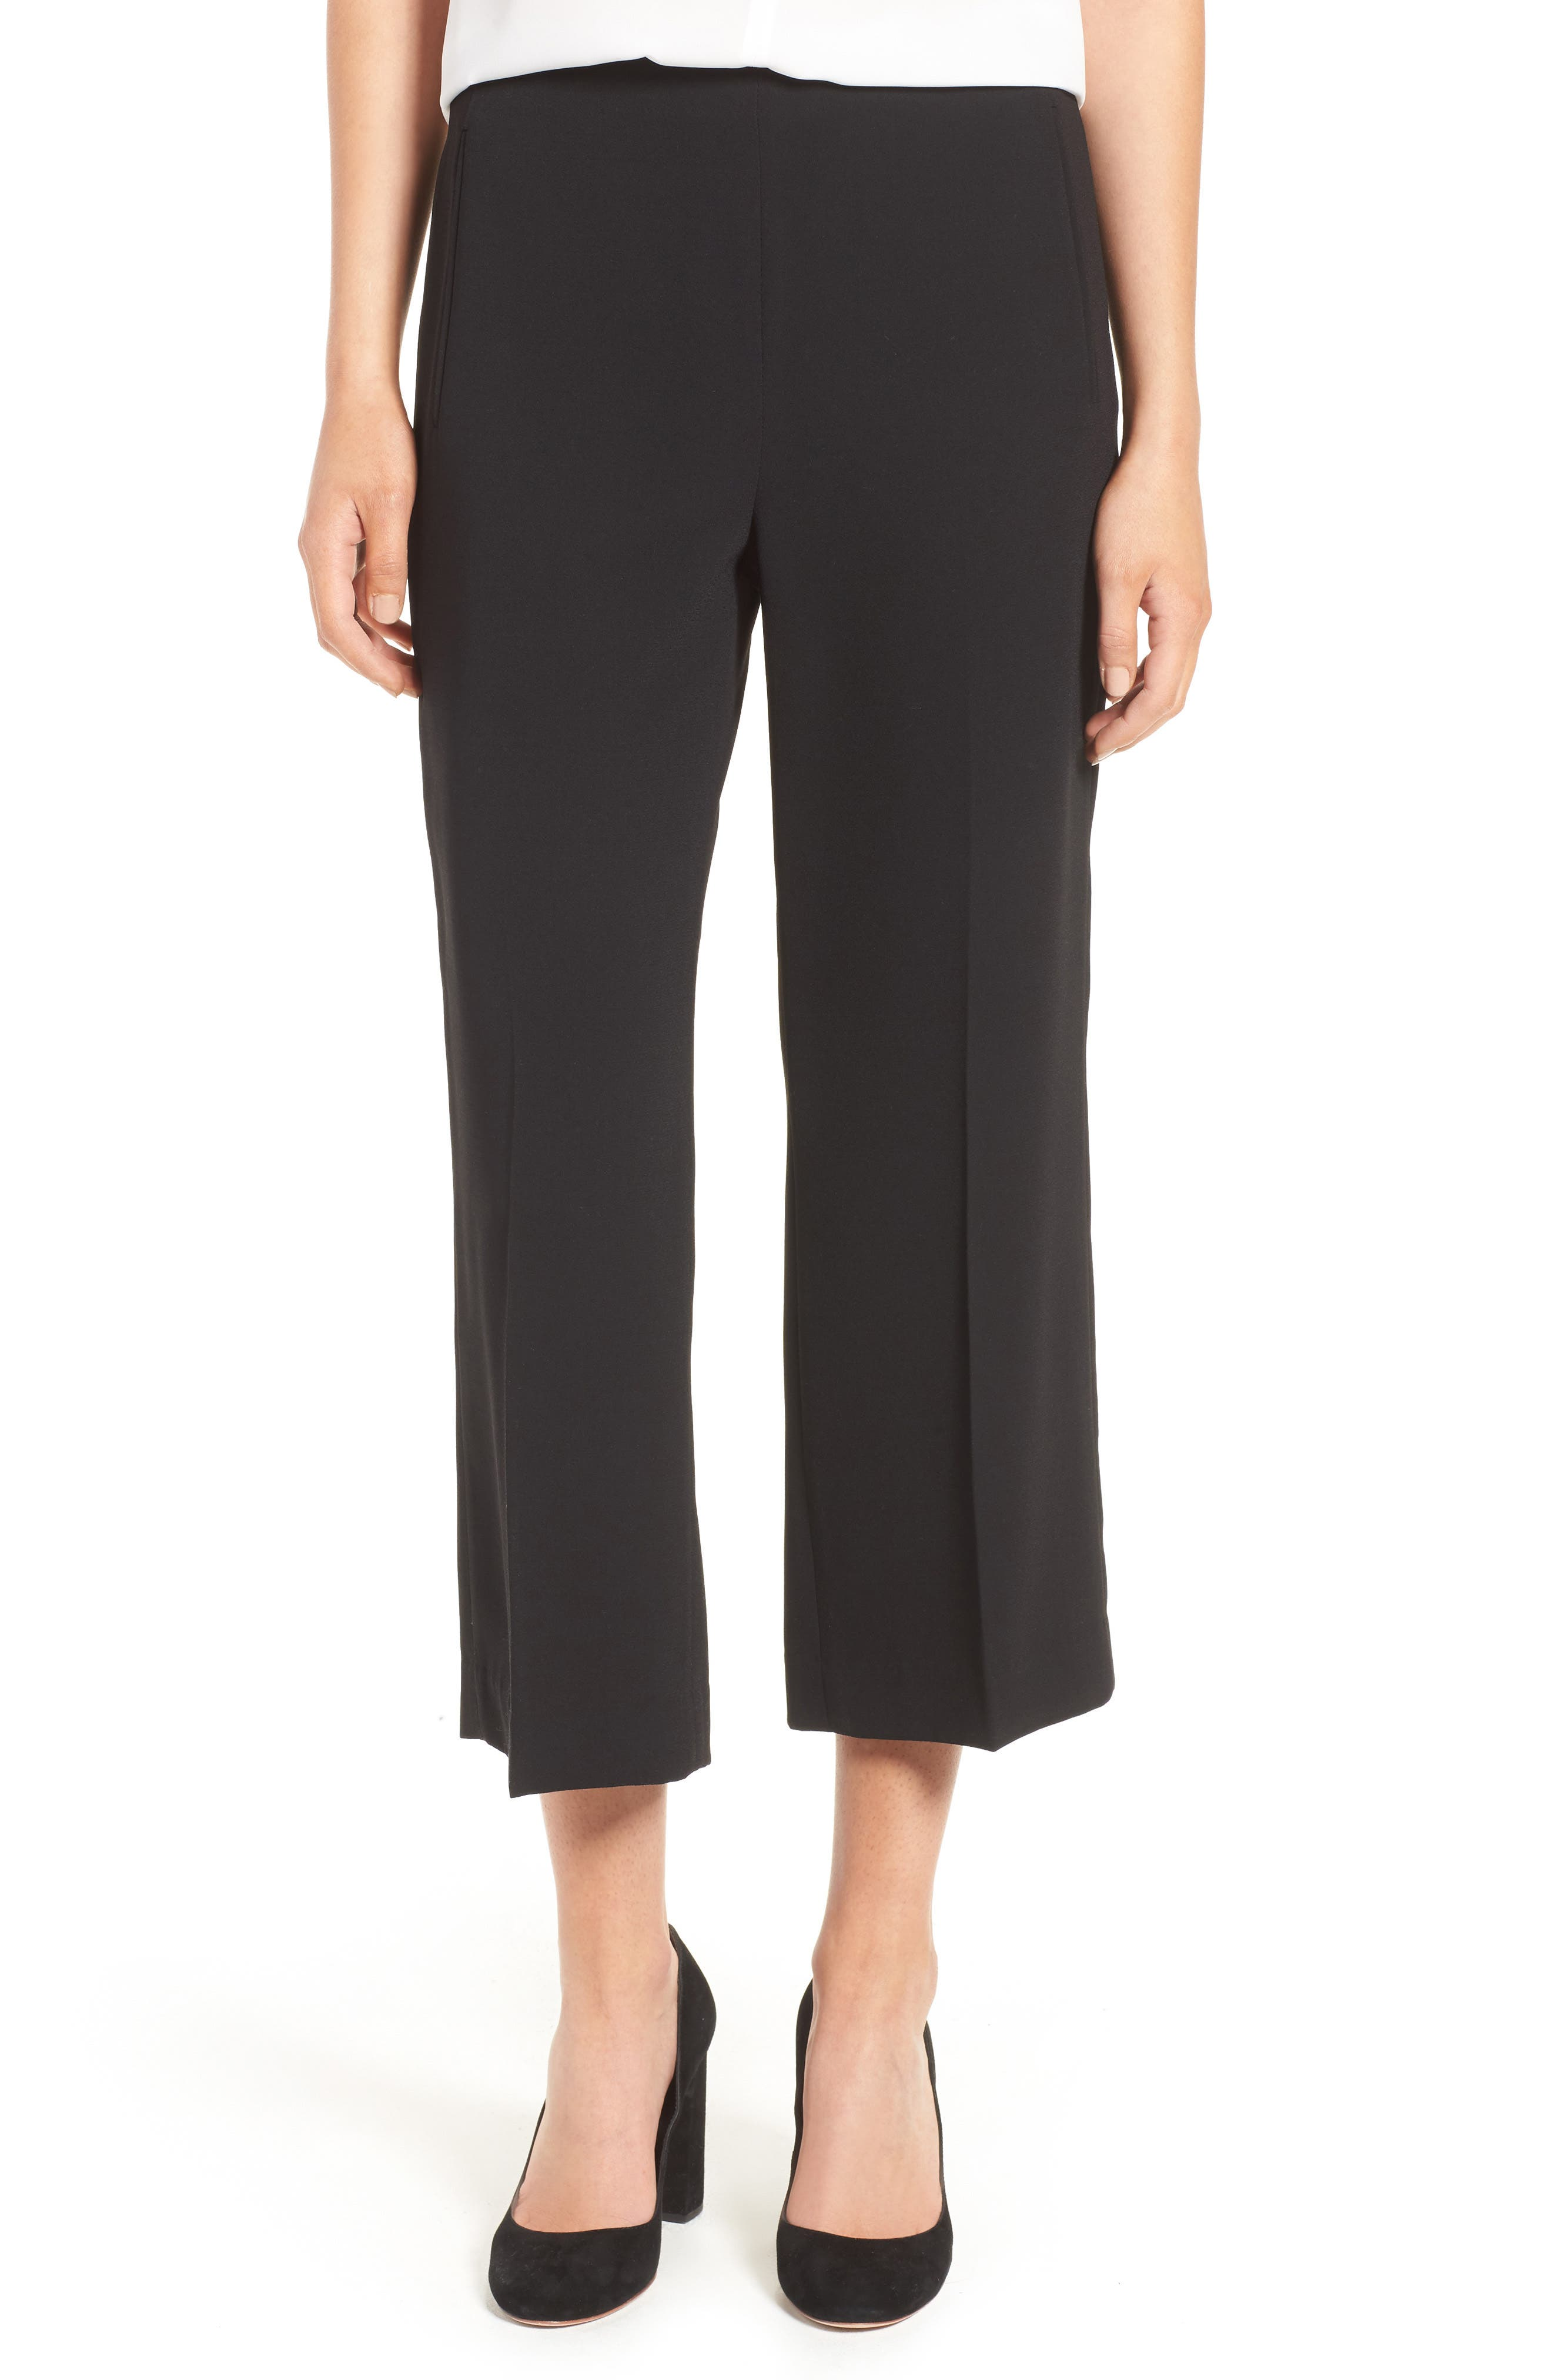 Moss Crepe Crop Trousers,                         Main,                         color, 001